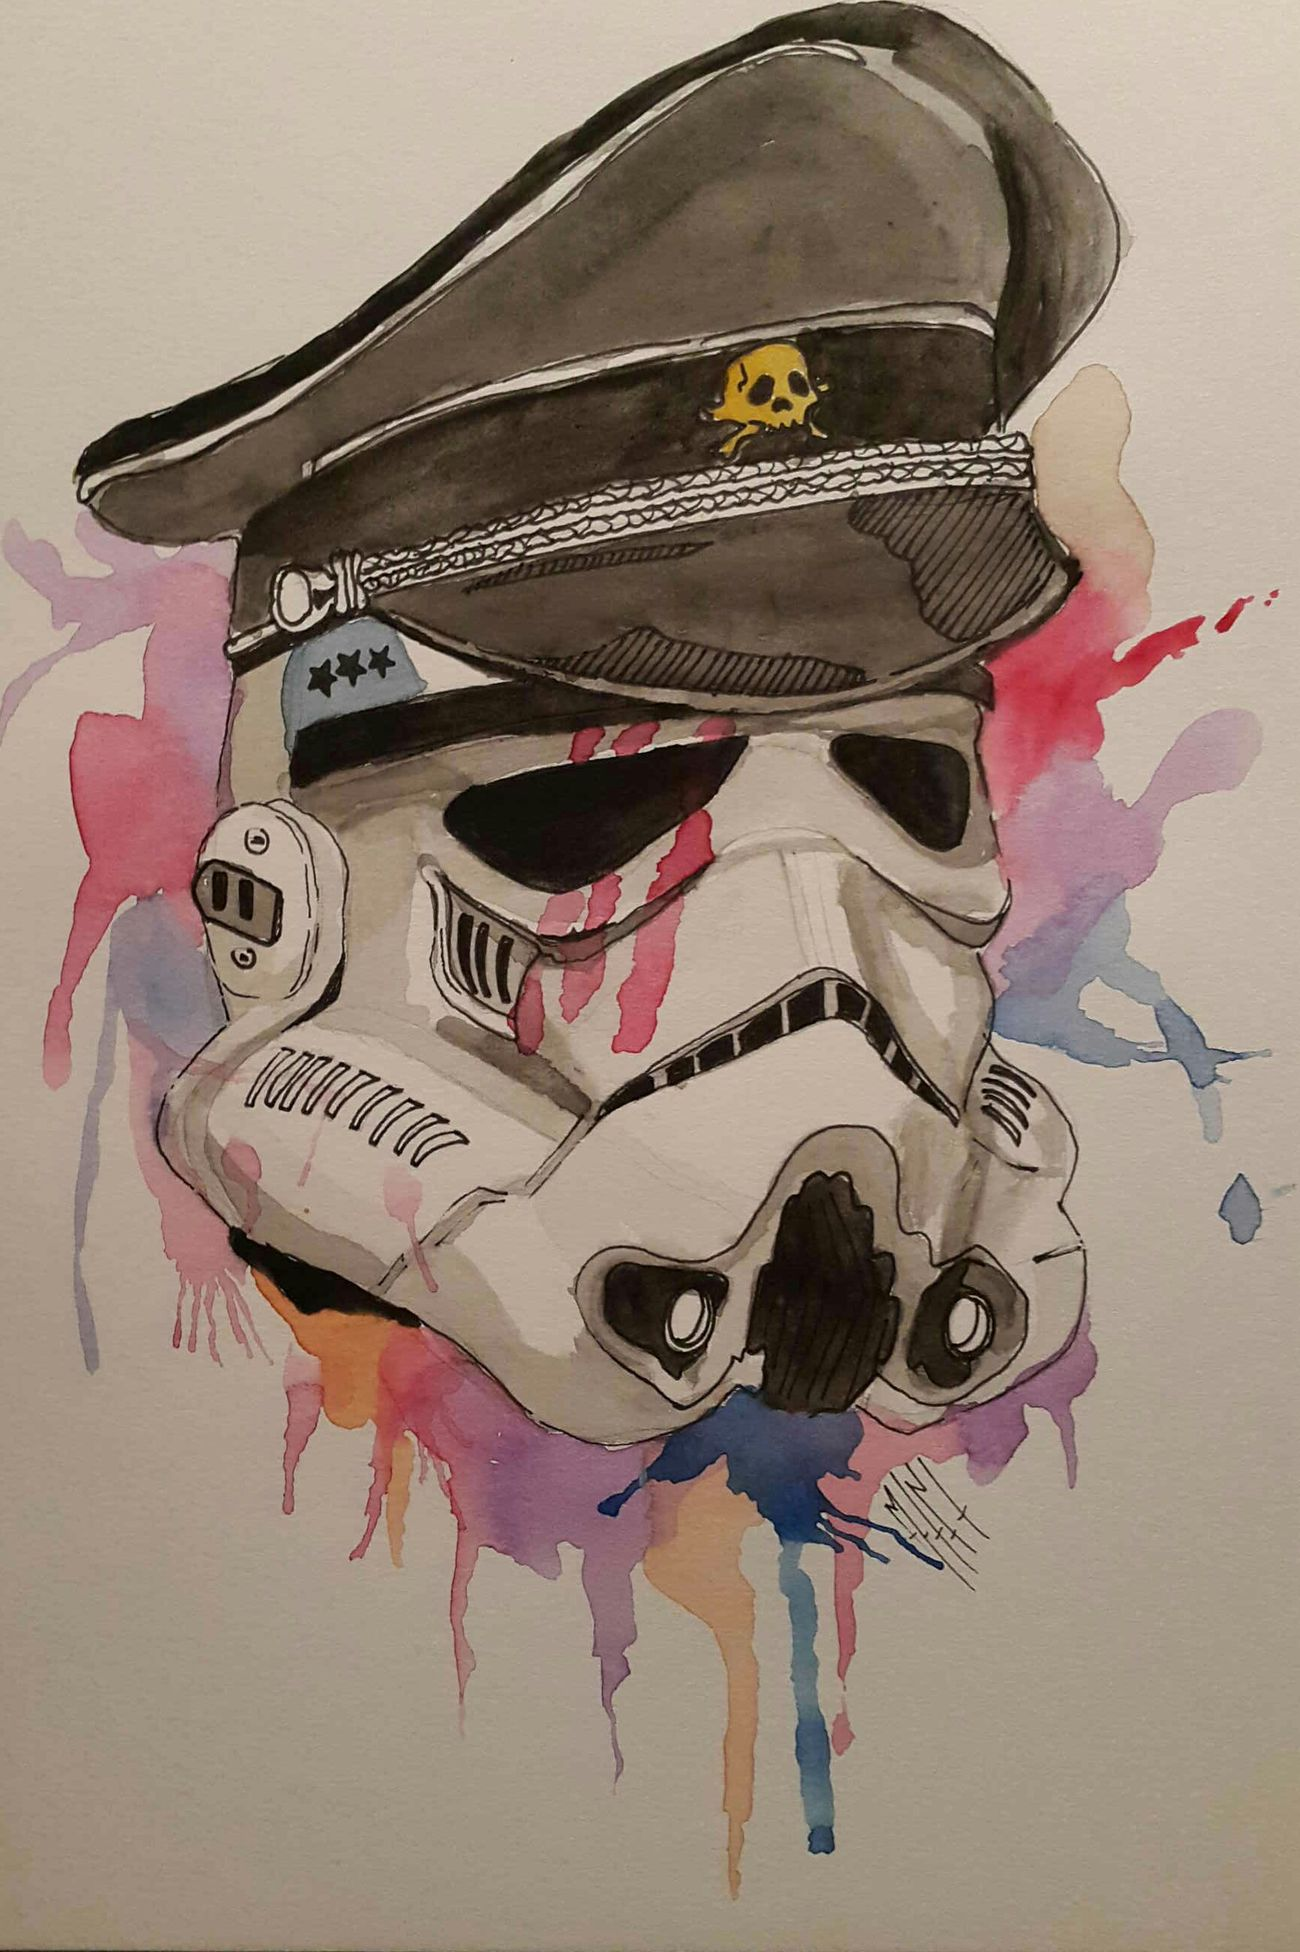 Statwars stormtroopers Starwars Stormtroopers Watercolor Art Illustration My Drawing Relaxing